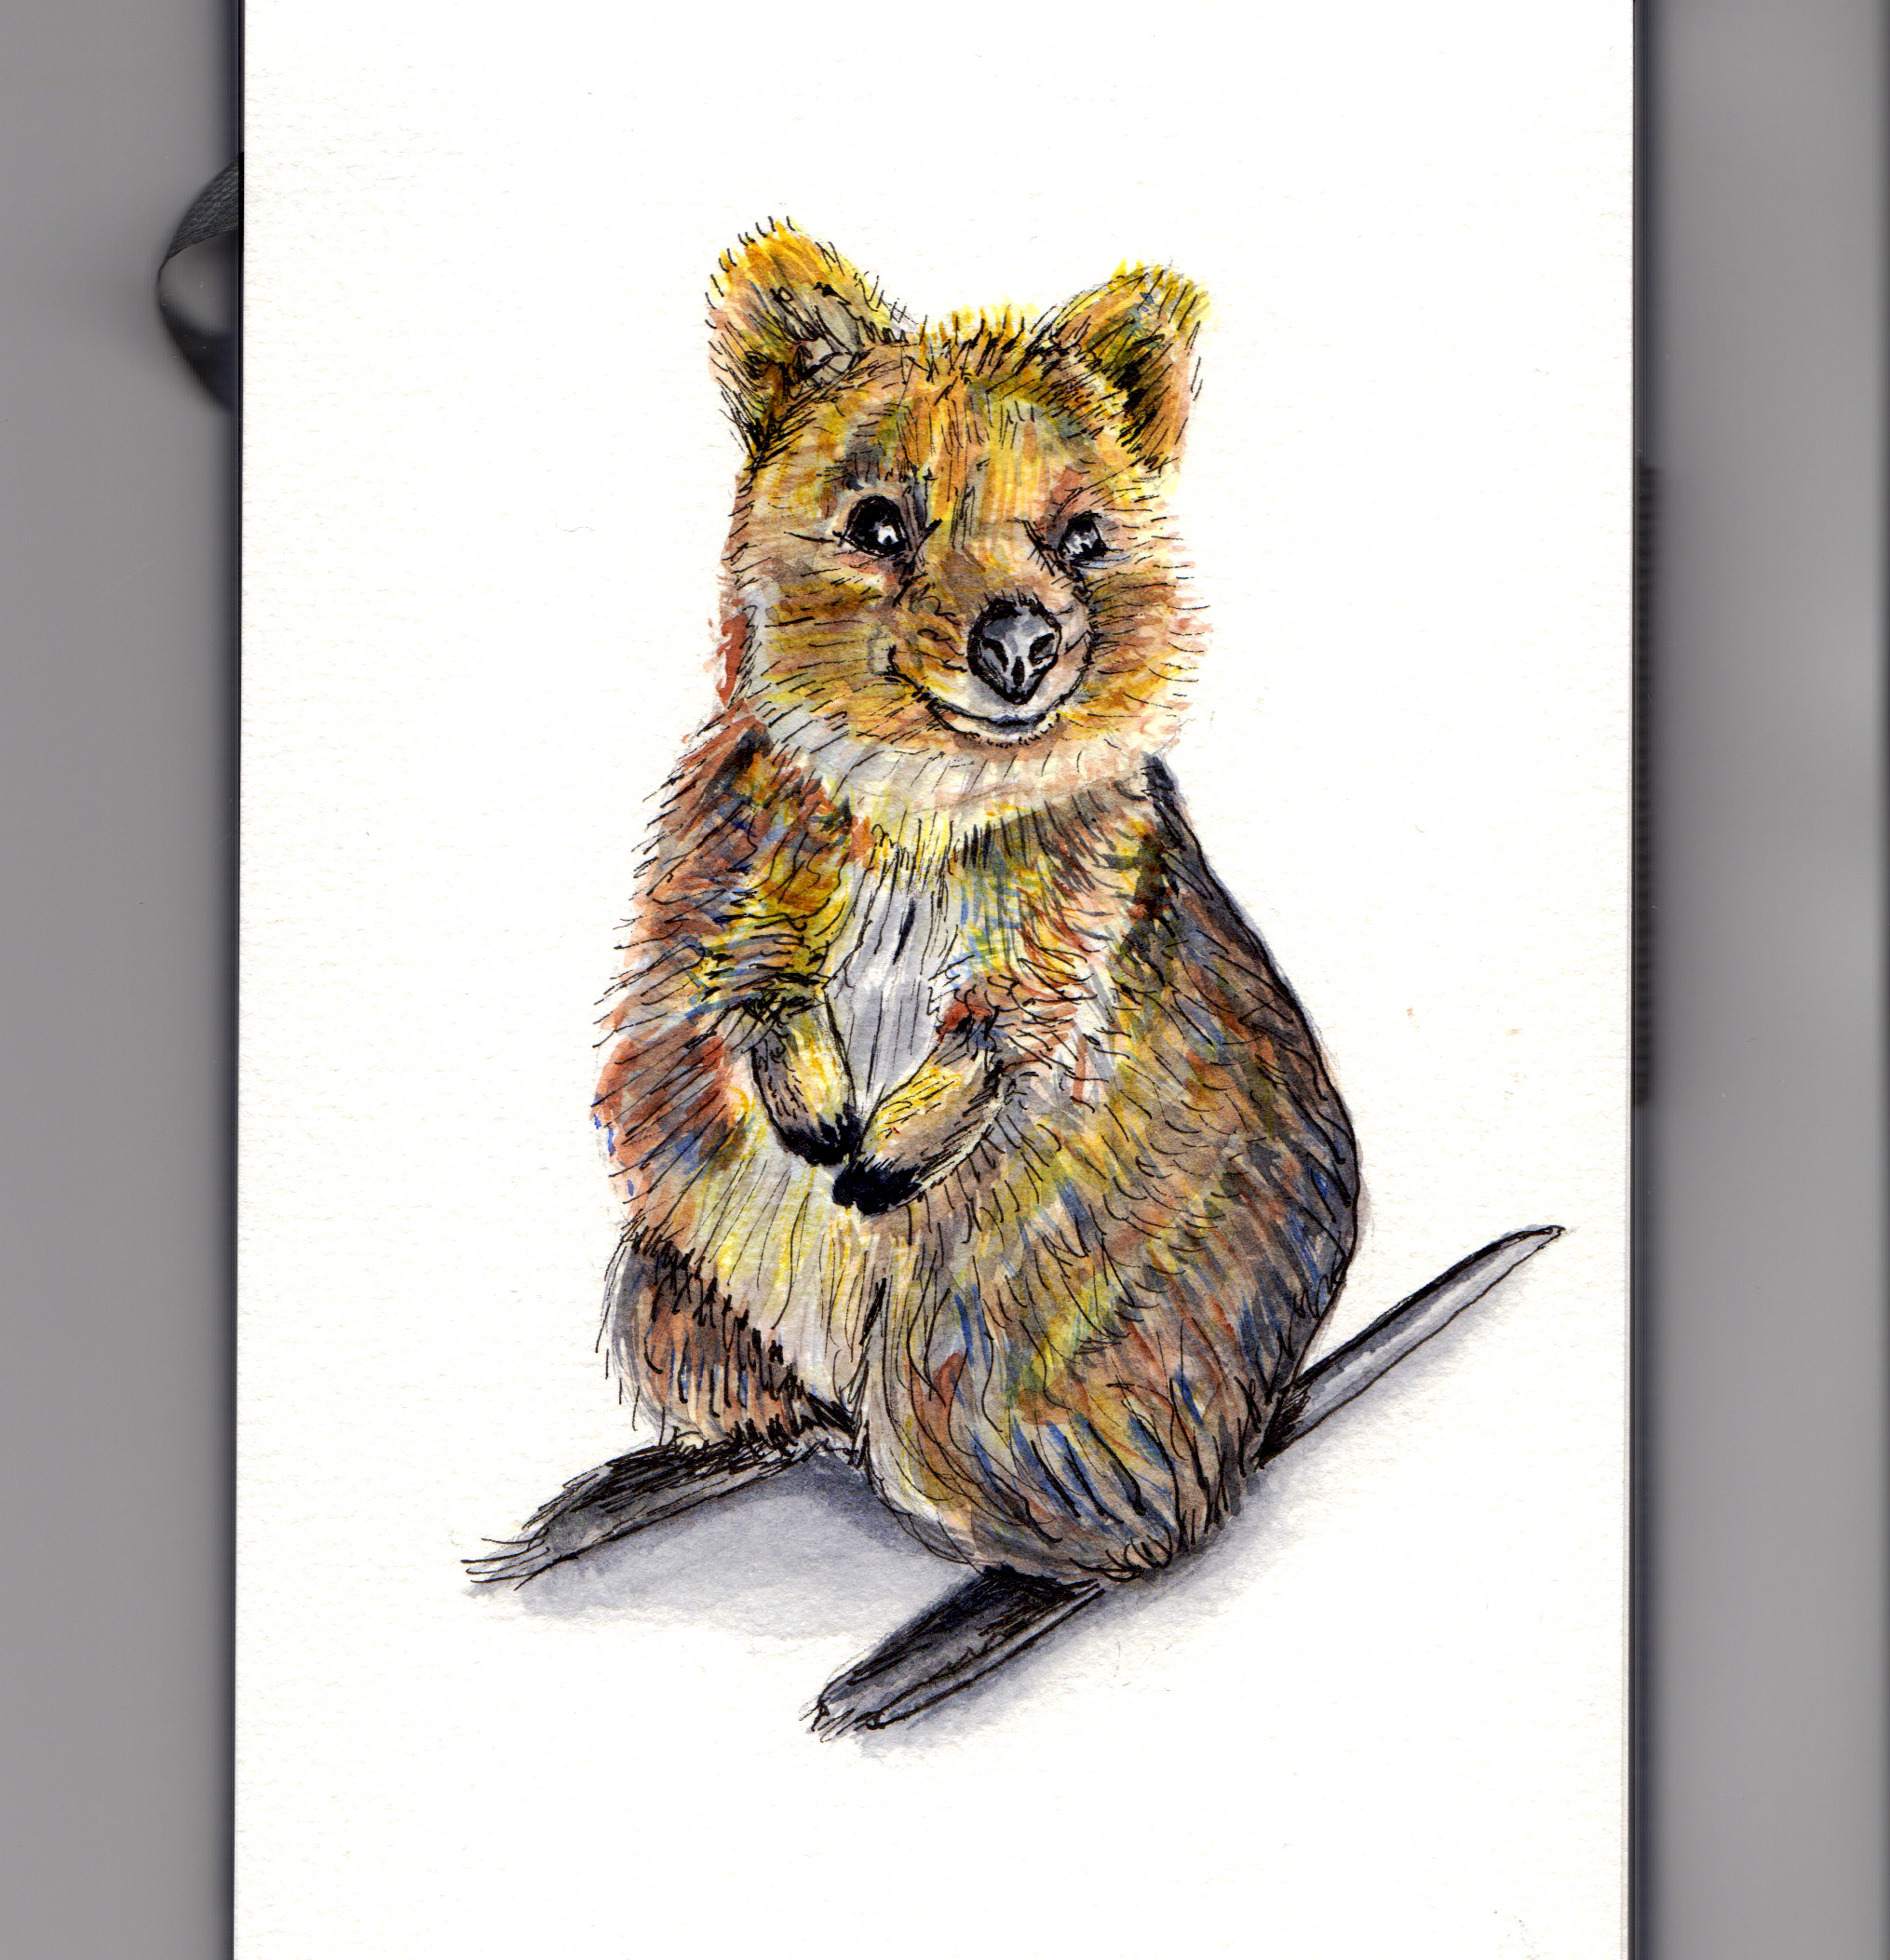 The Happy Quokka